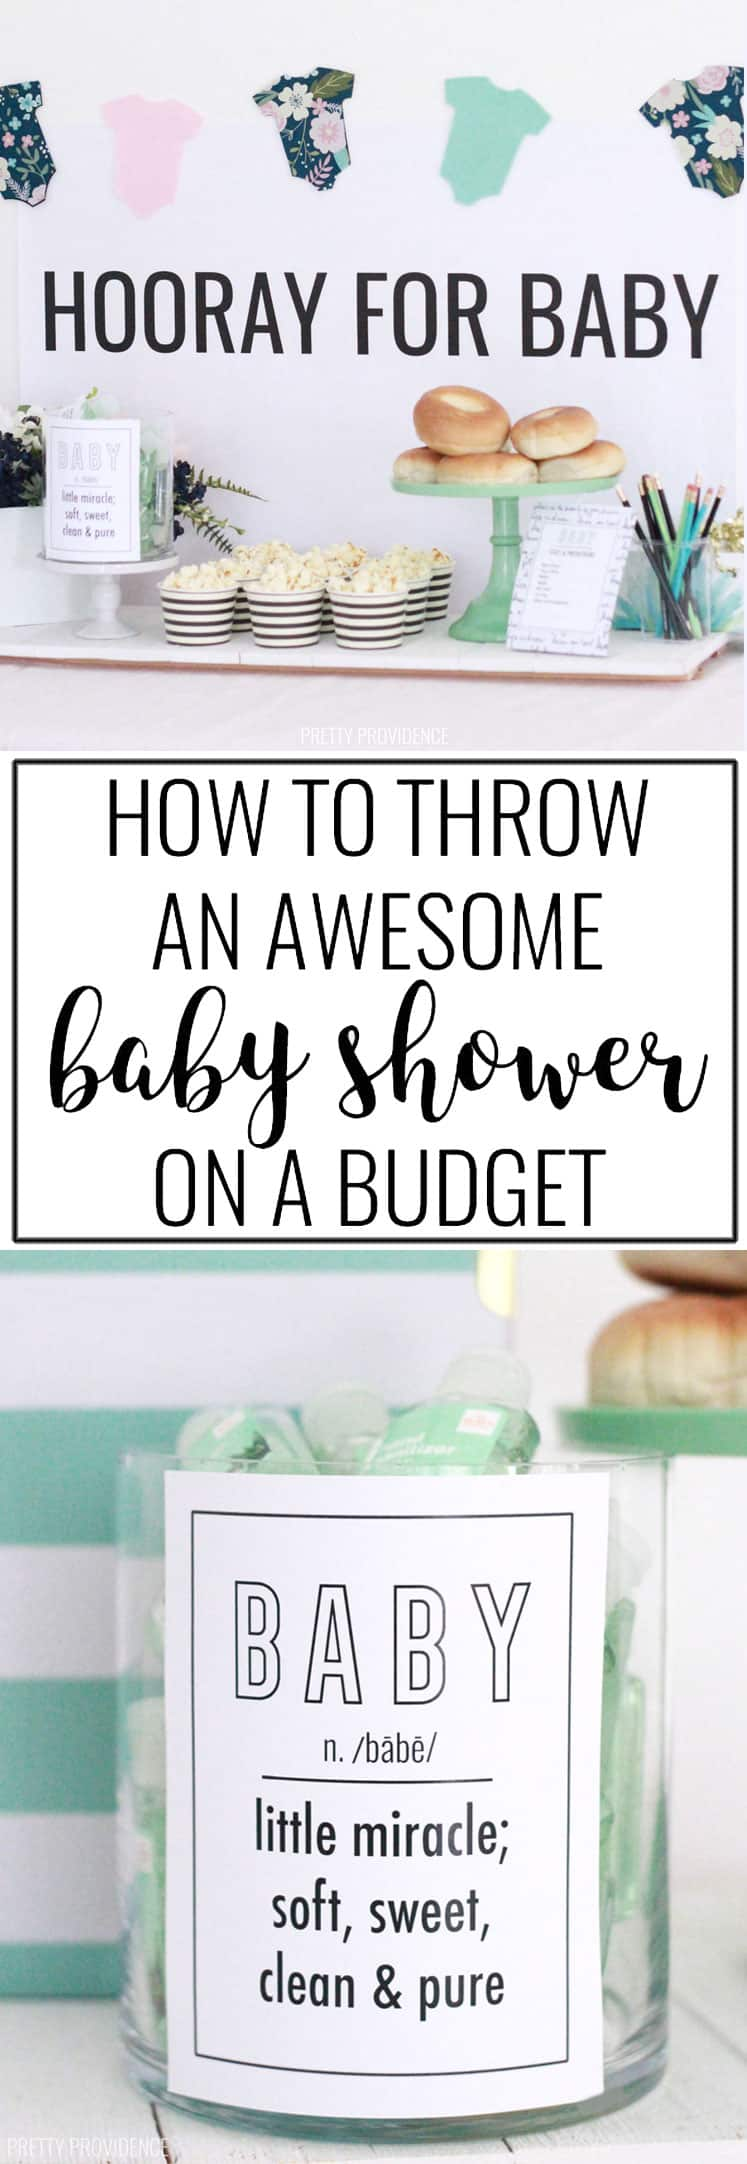 Baby shower ideas on a budget with cute free printables, games and food ideas! #babyshower #babyshowerideas #babyshowerdecorations #babyshowerfavors #freeprintable #partyideas #parties #babyshowergames